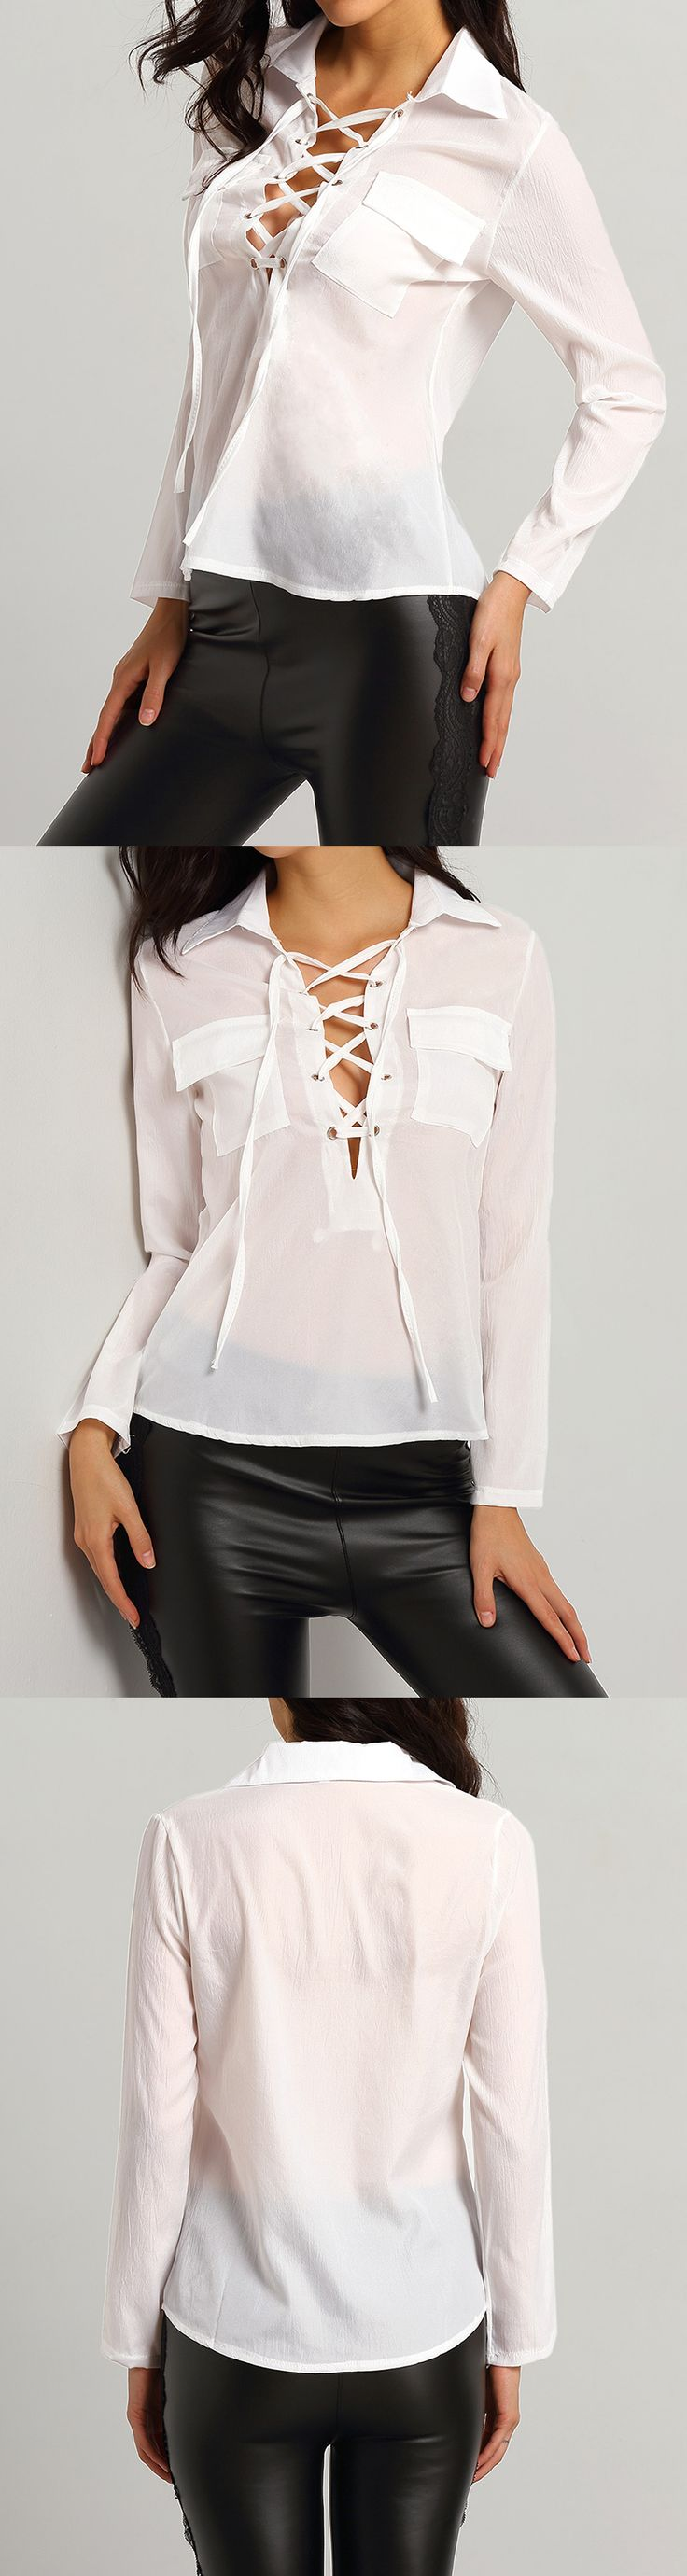 Really nice blouse in lace up for just $10.99. Great for work & trip outfit. Also enjoy 60% off 1st order. And free shipping on orders +US$50. Check for White Lapel Bandage Pockets Blouse.